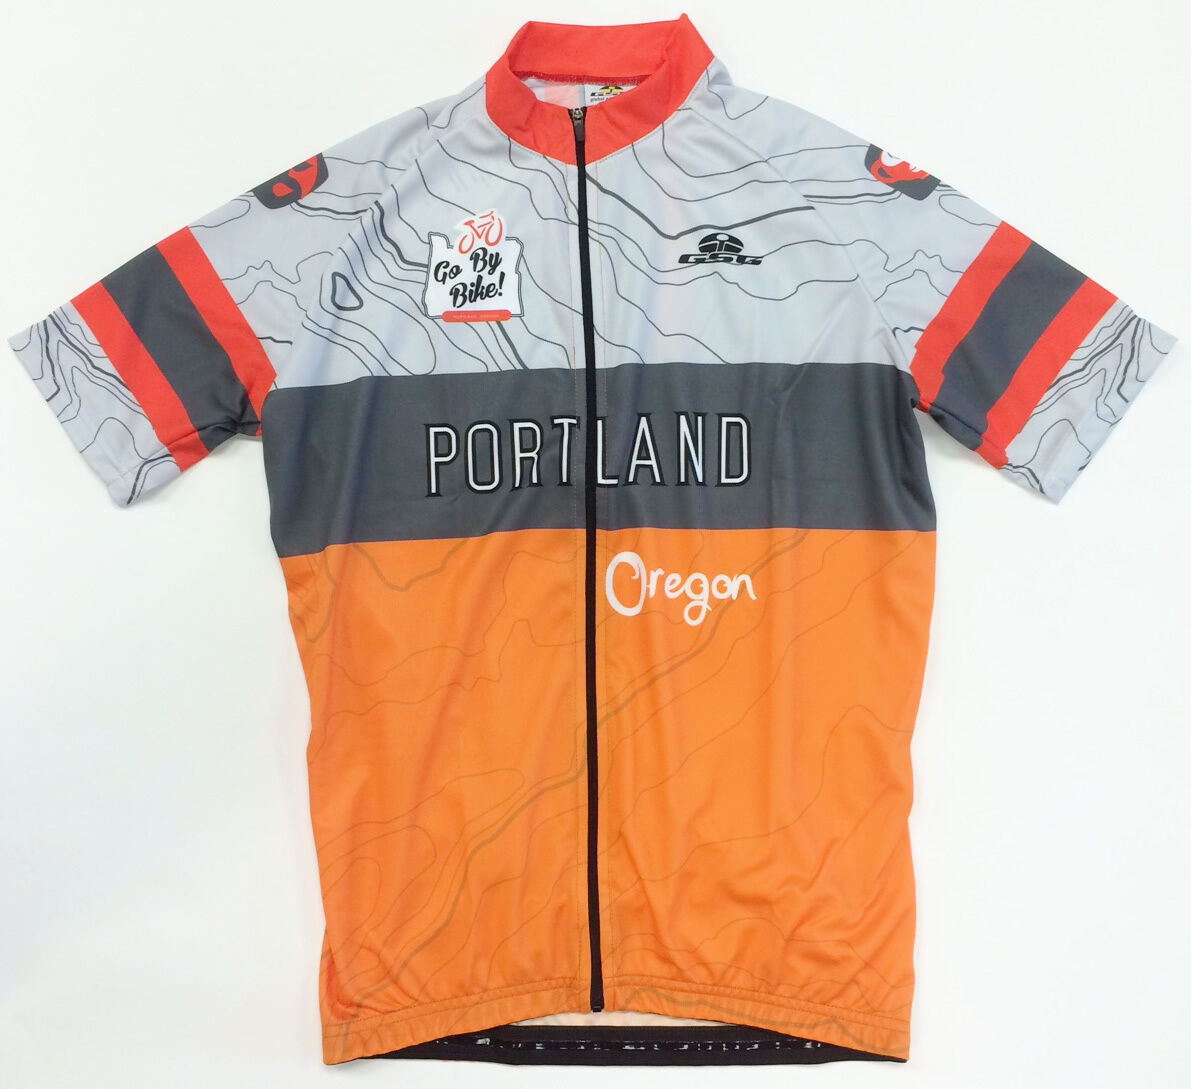 Portland Oregon CYCLING SHORT  SLEEVE JERSEY in orange. Made in  by GSG  general high quality